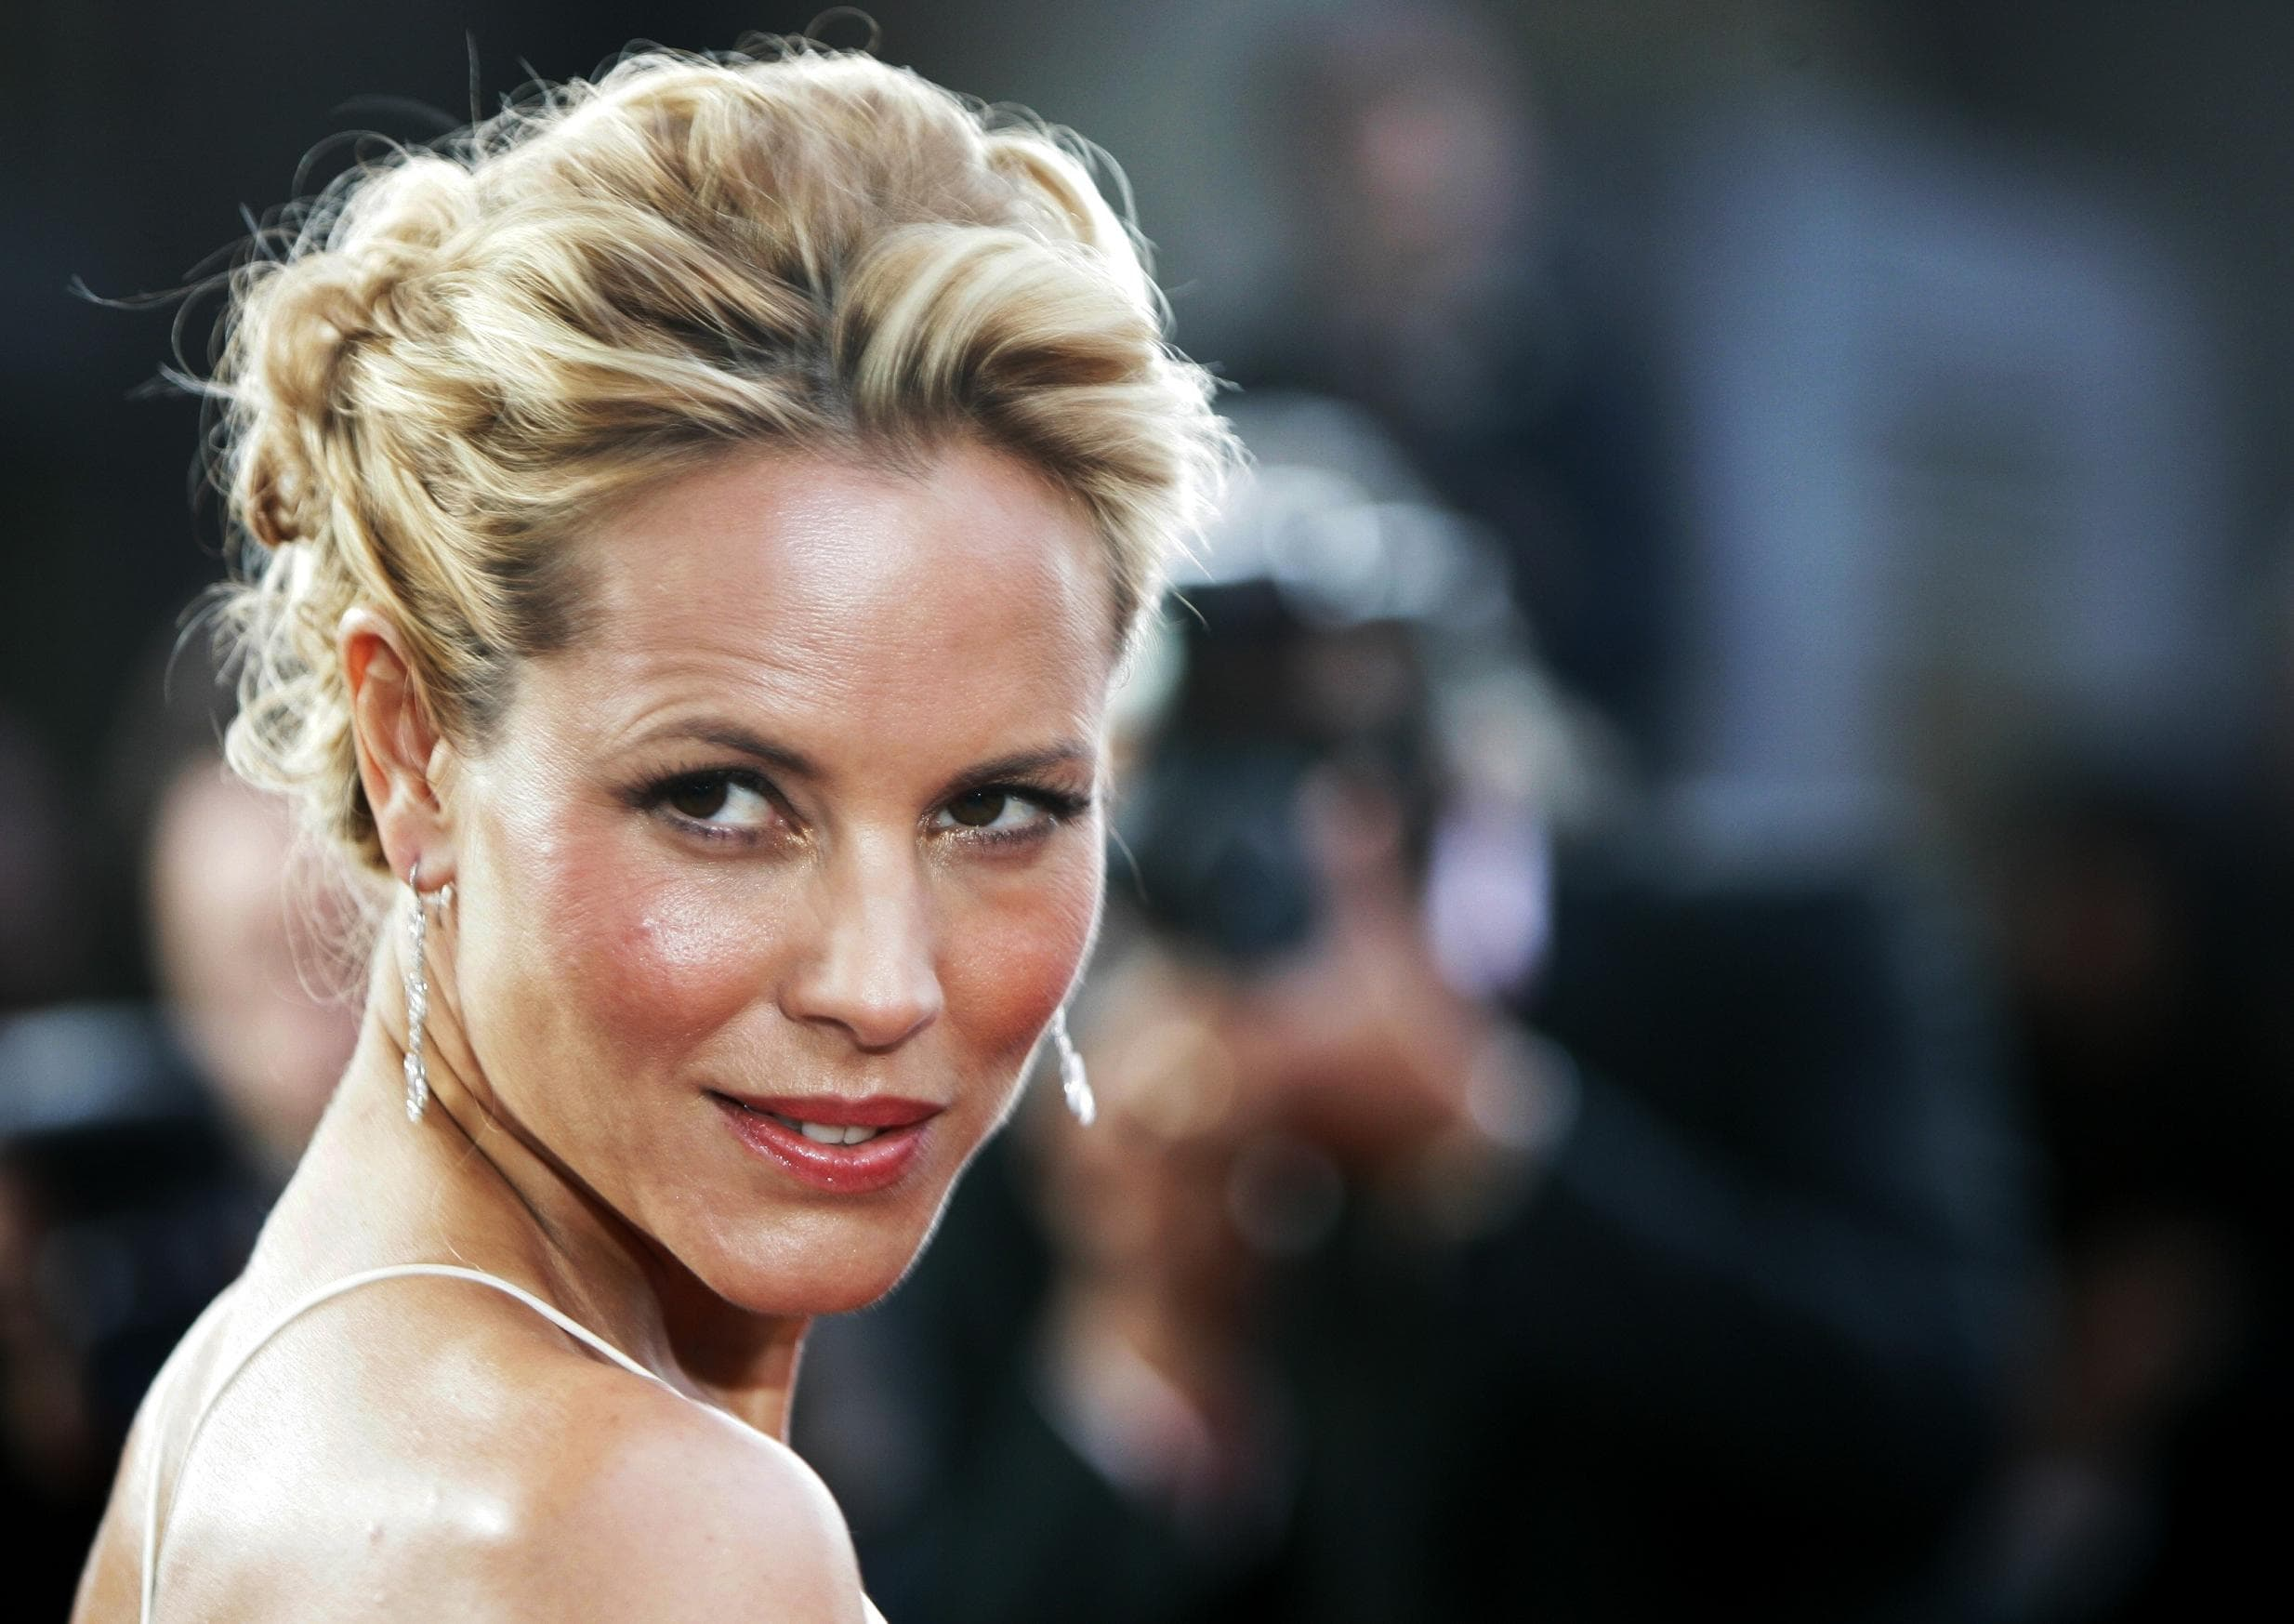 Maria Bello Widescreen for desktop